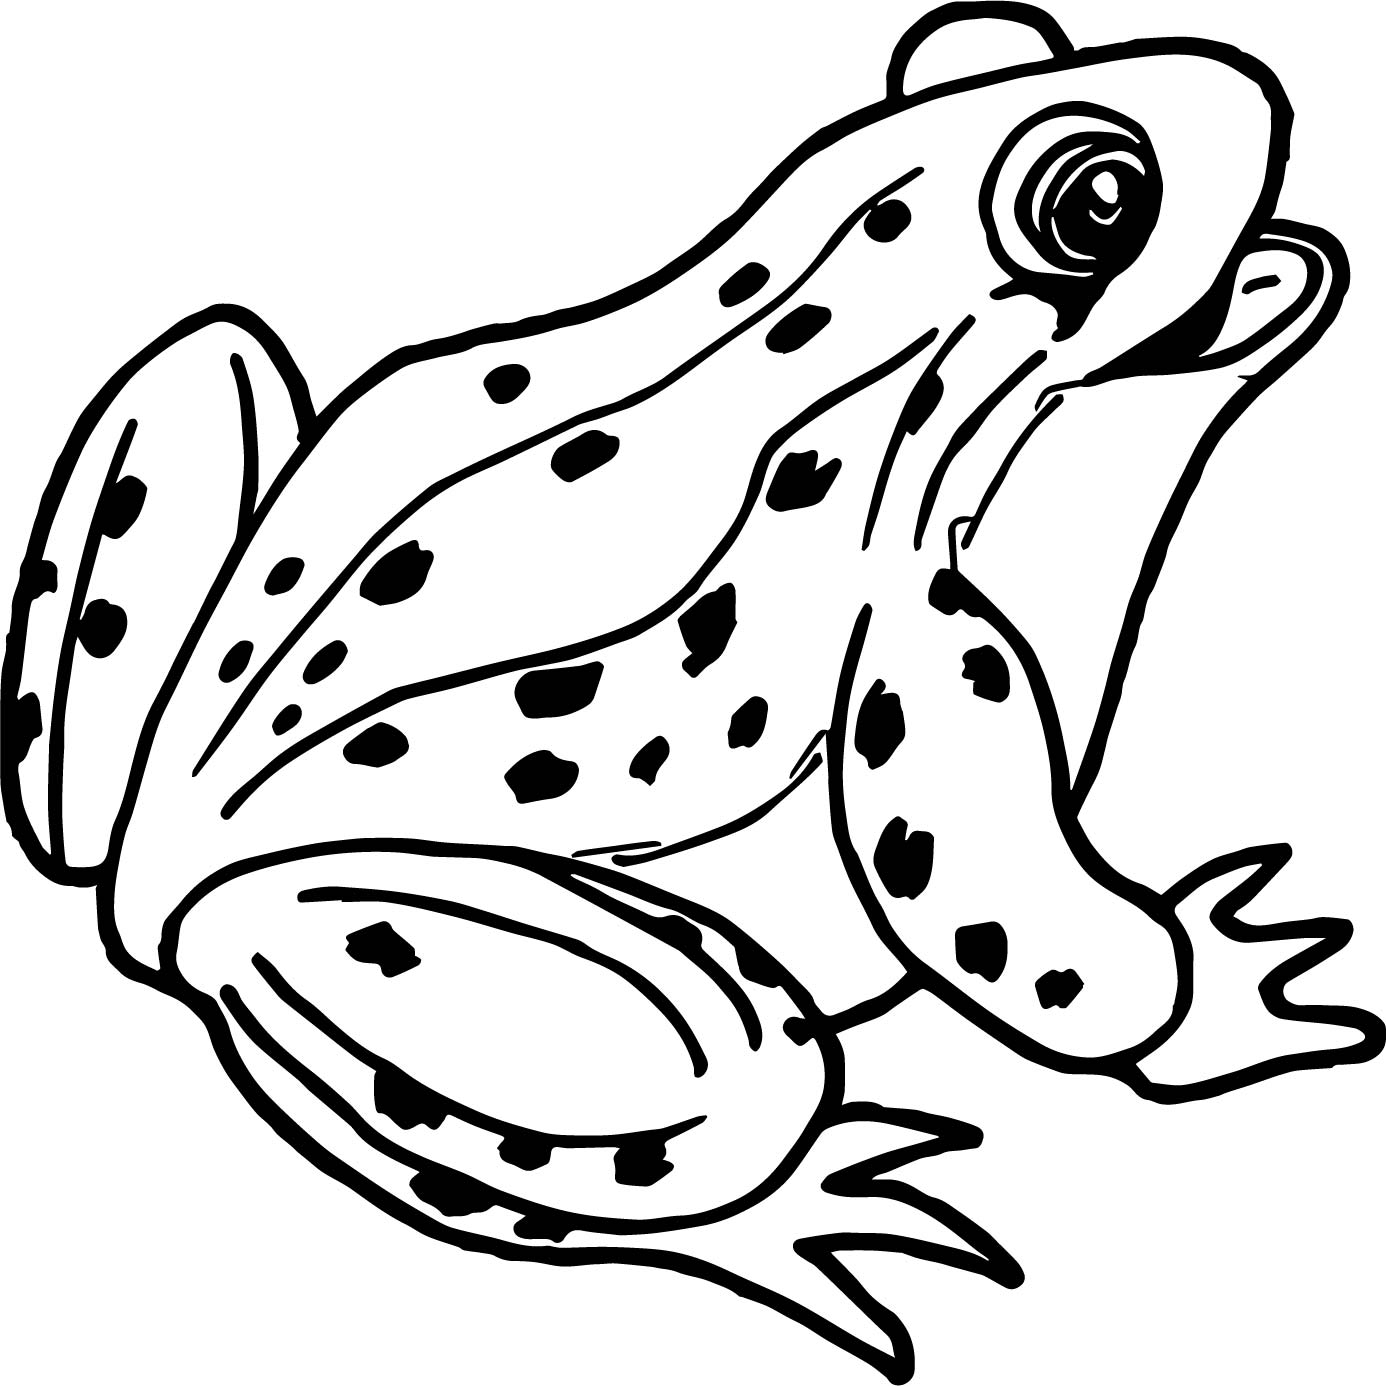 frog coloring pages to print frogs to color for children frogs kids coloring pages print coloring frog pages to